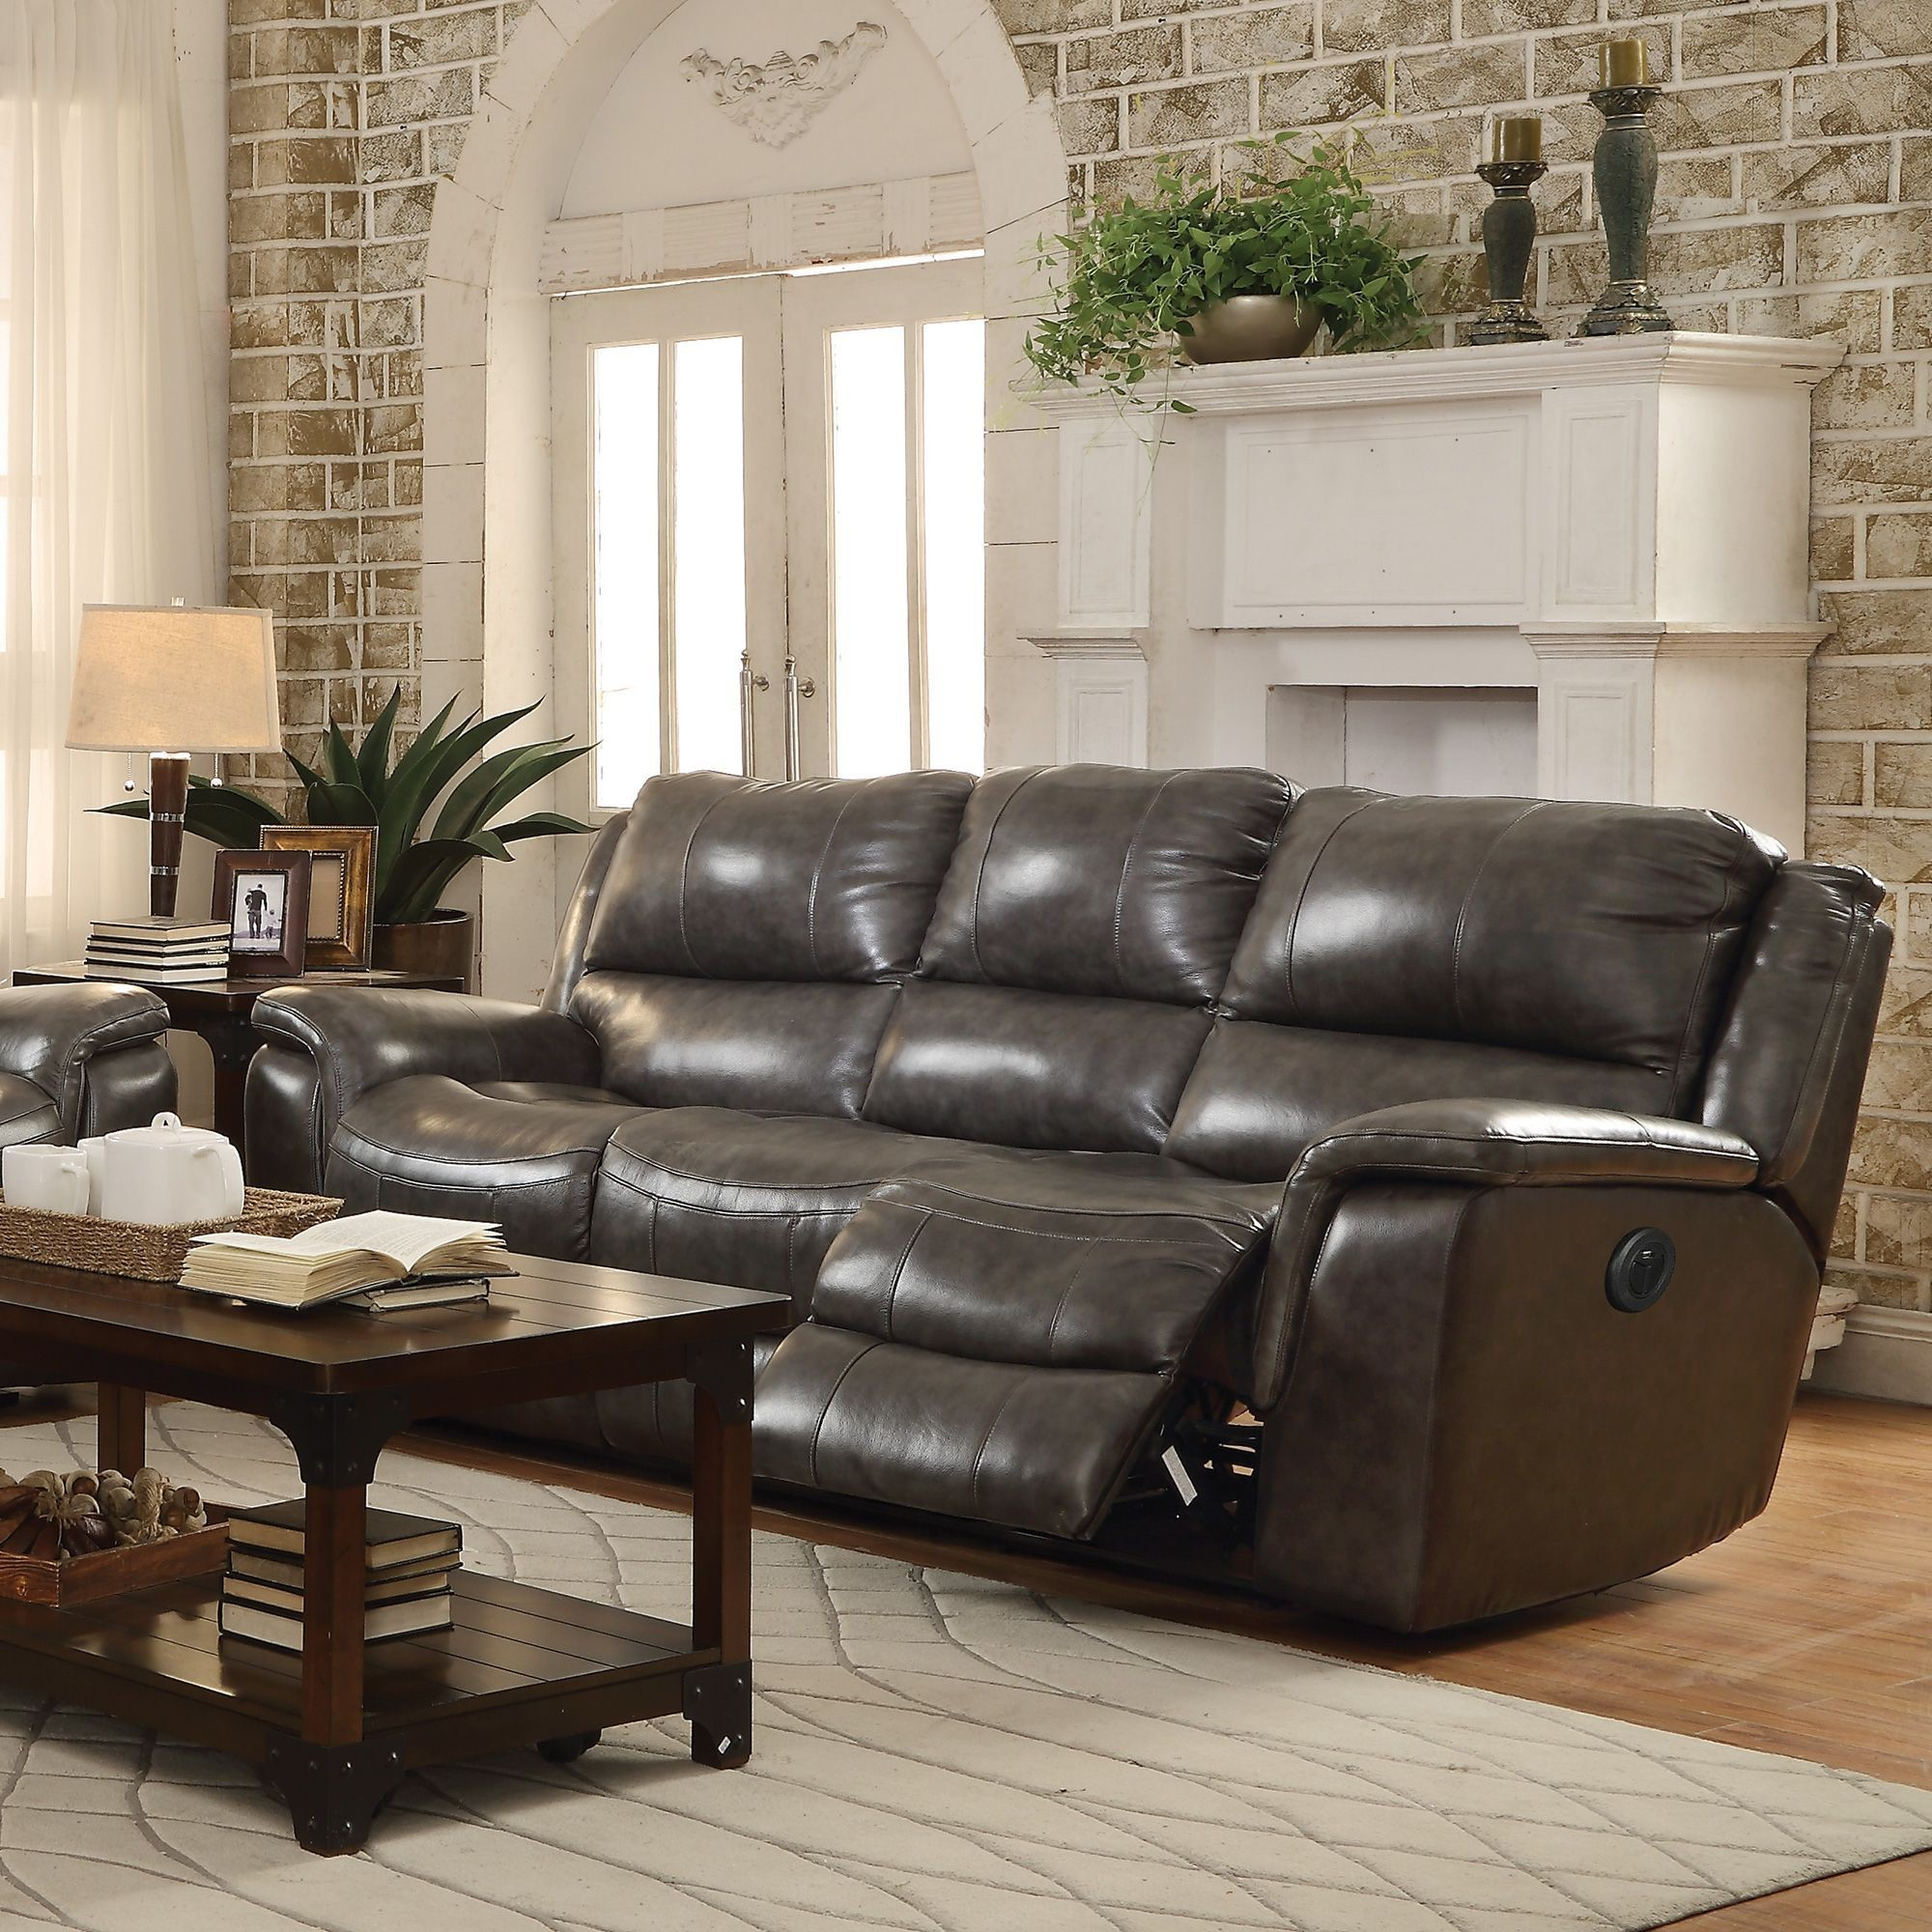 Wingfield Charcoal Power Reclining Sofa from Coaster P